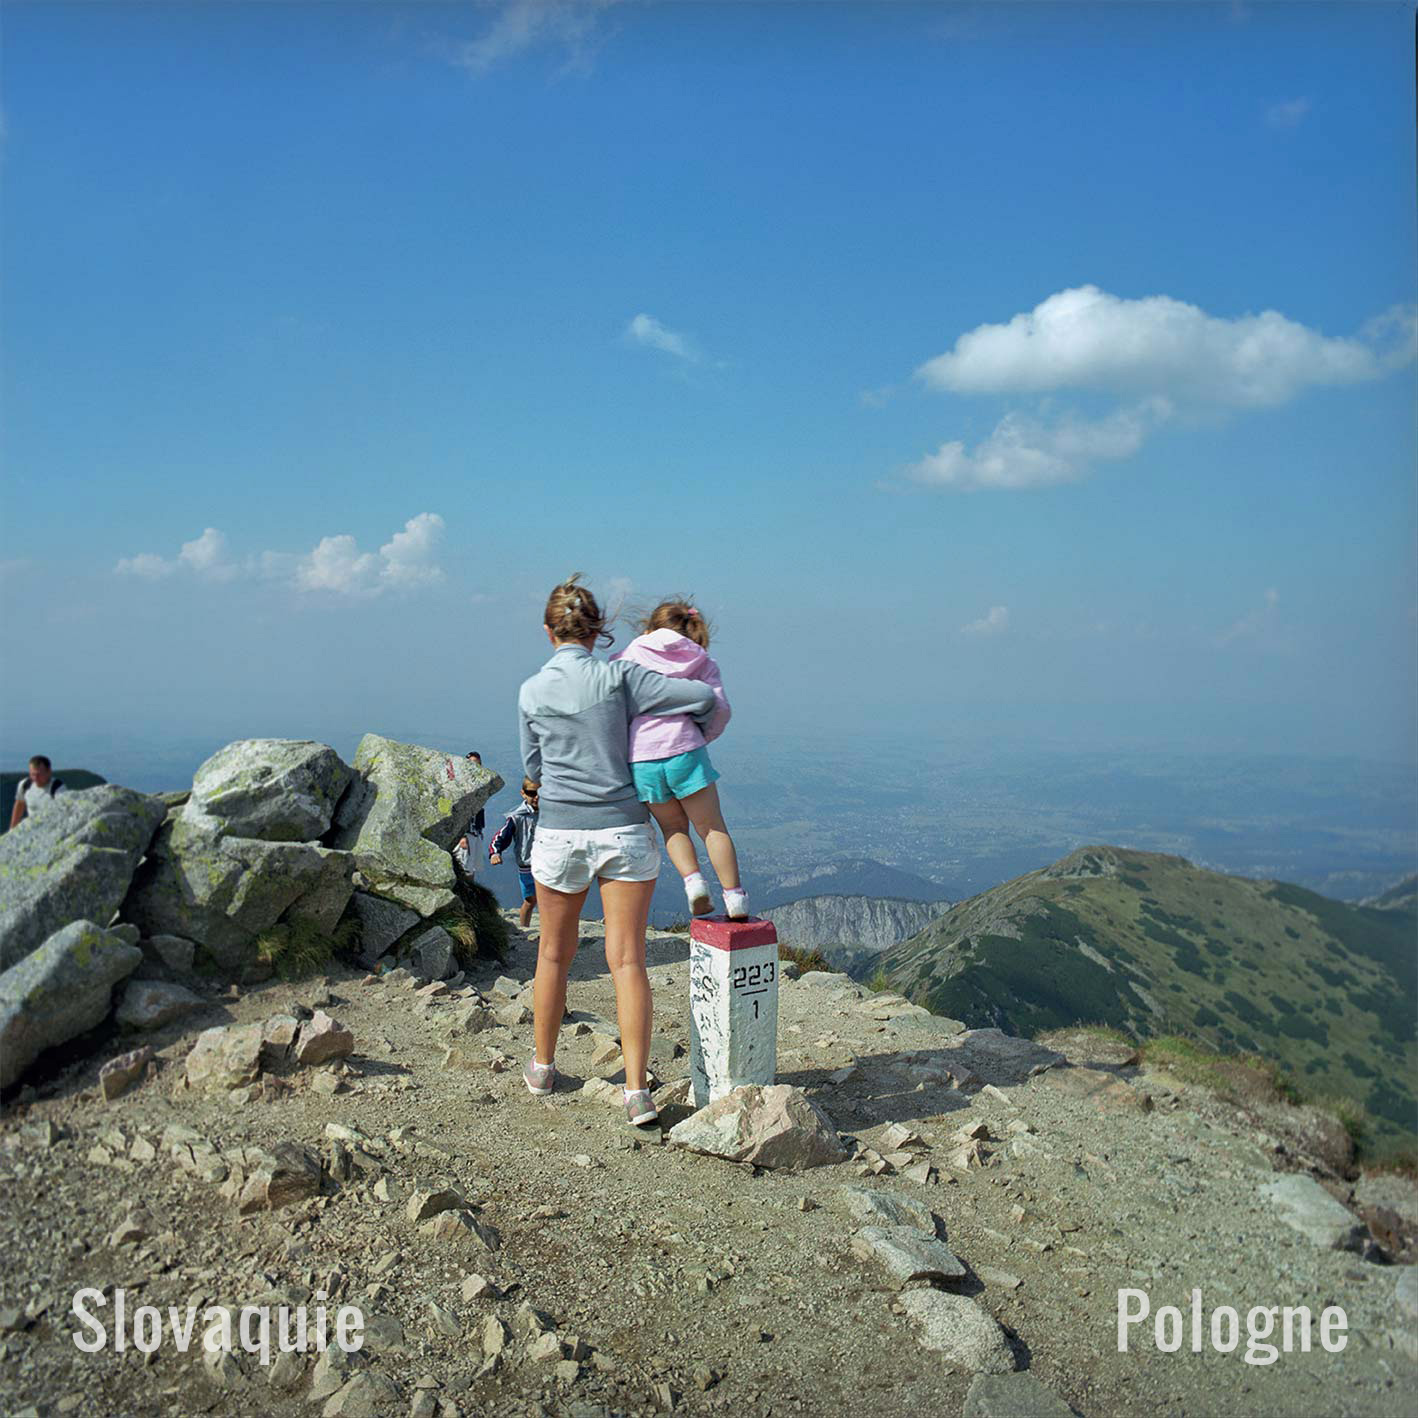 Slovaquie / Pologne